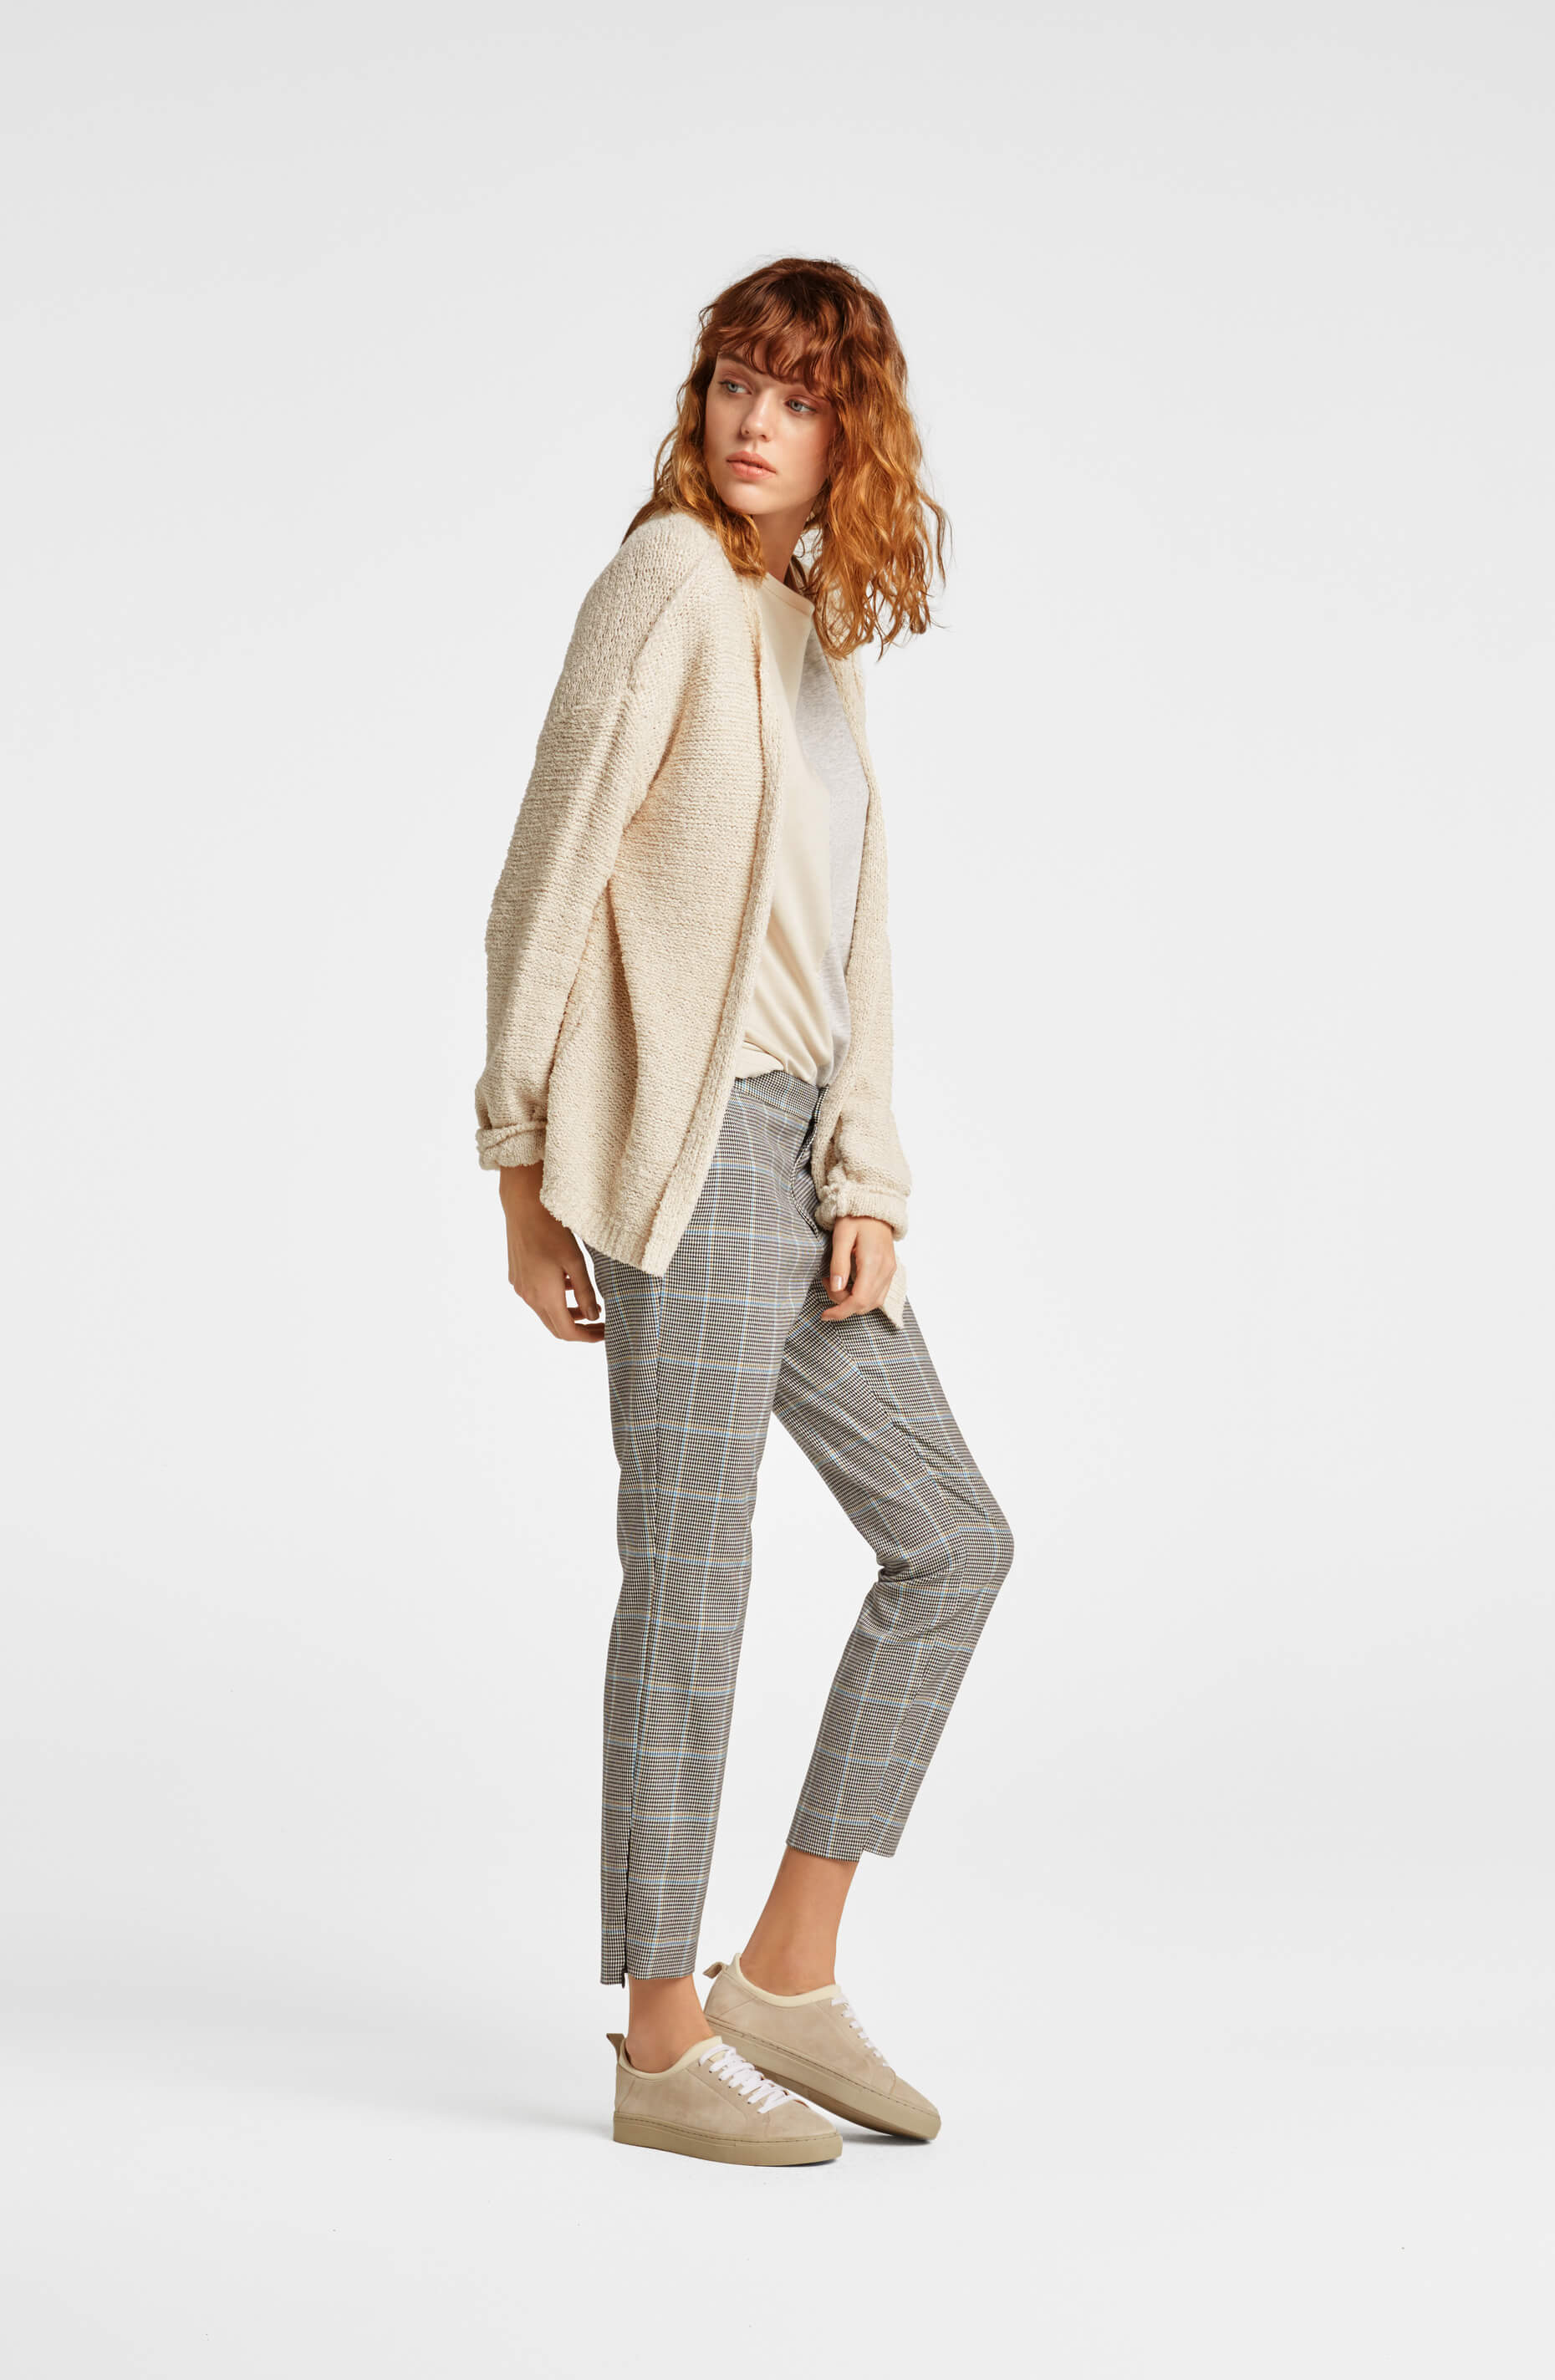 Check Trousers and Cardigan | The Mustcard